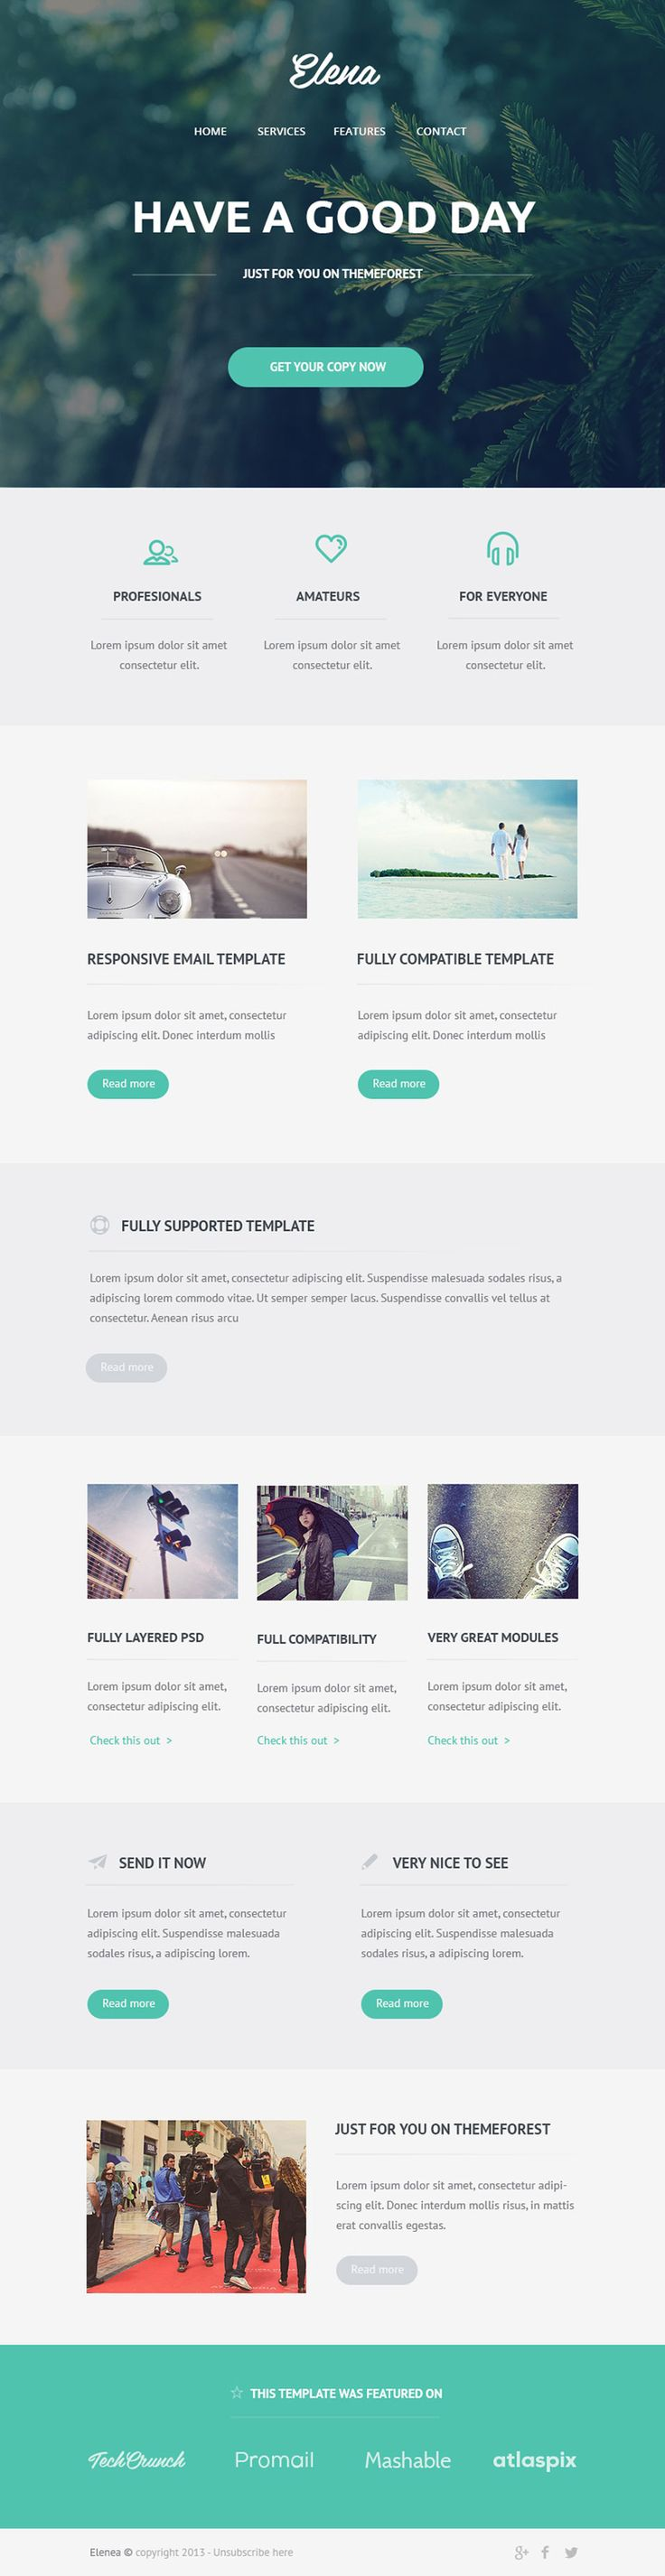 100+ Latest Free Web Page Templates PSD